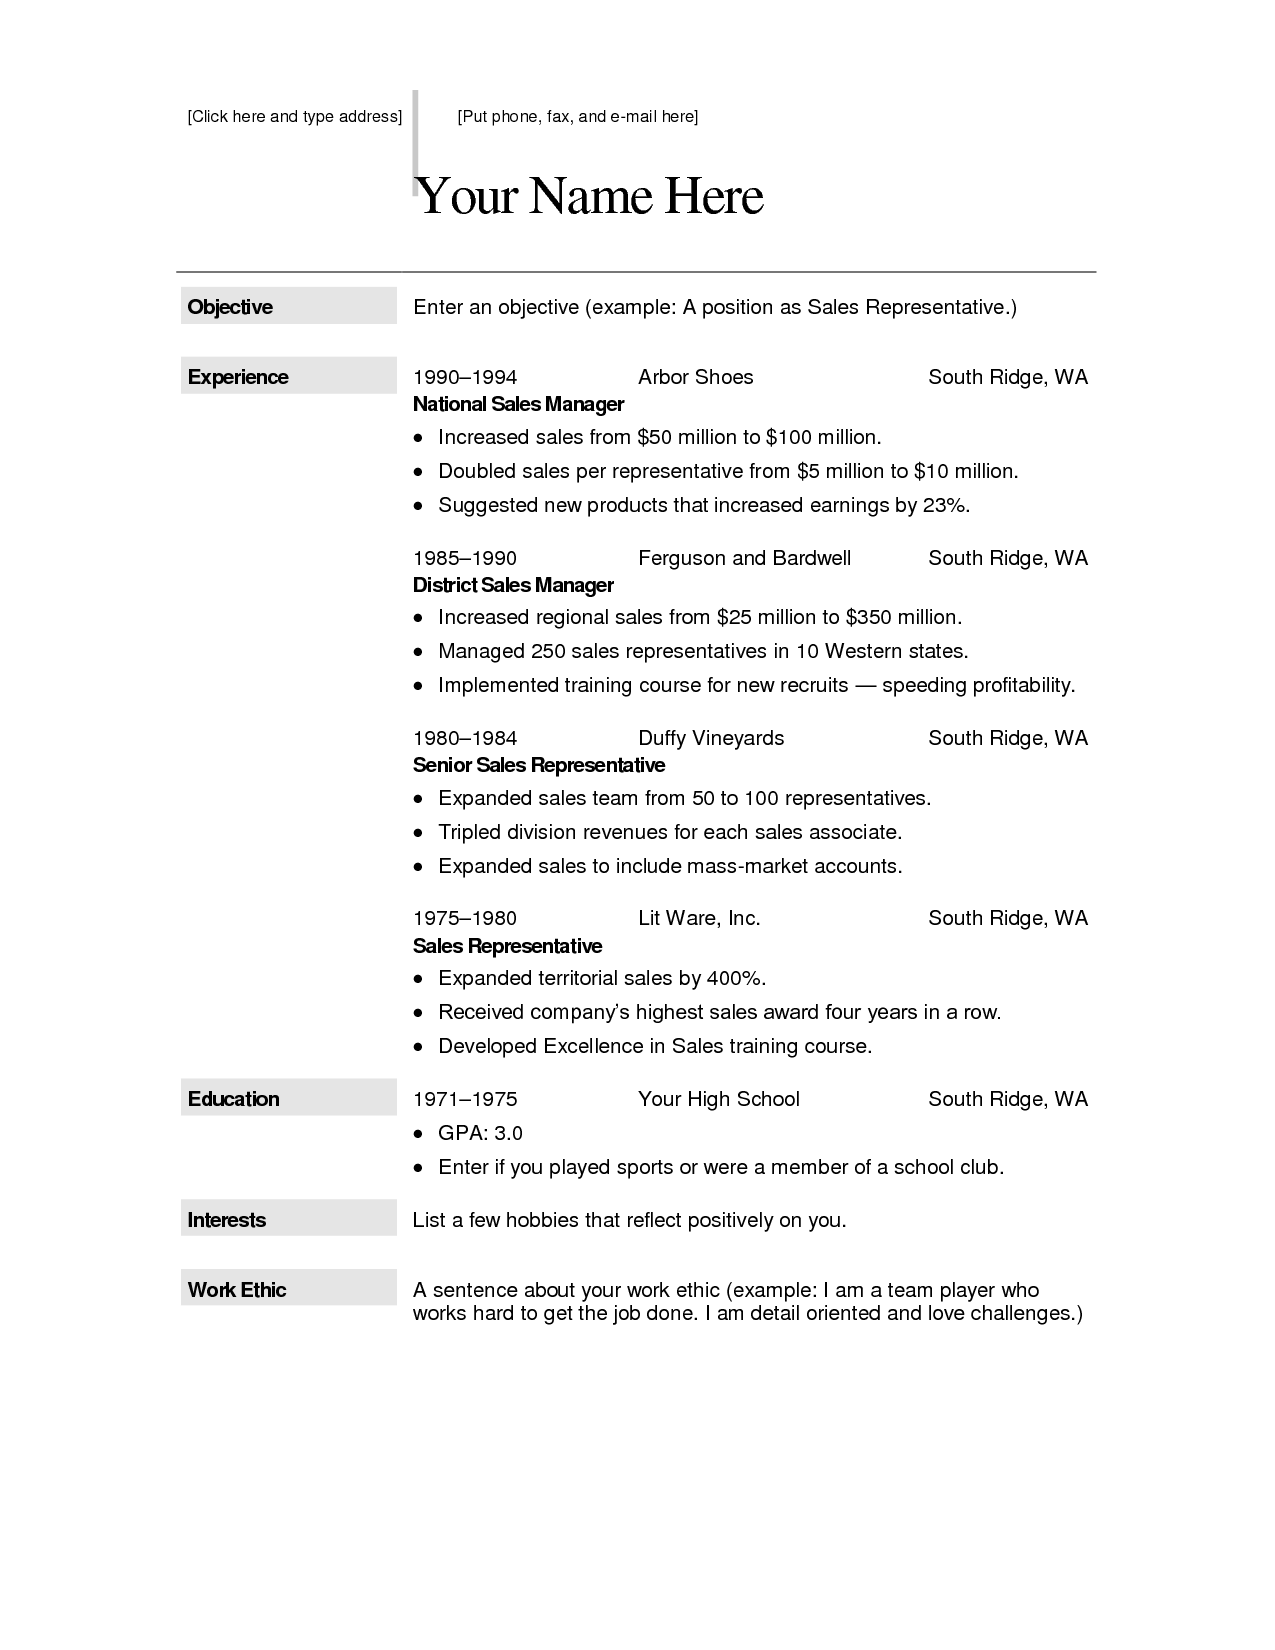 free creative resume templates for macfree creative resume templates for mac modern resume template - Downloadable Free Resume Templates